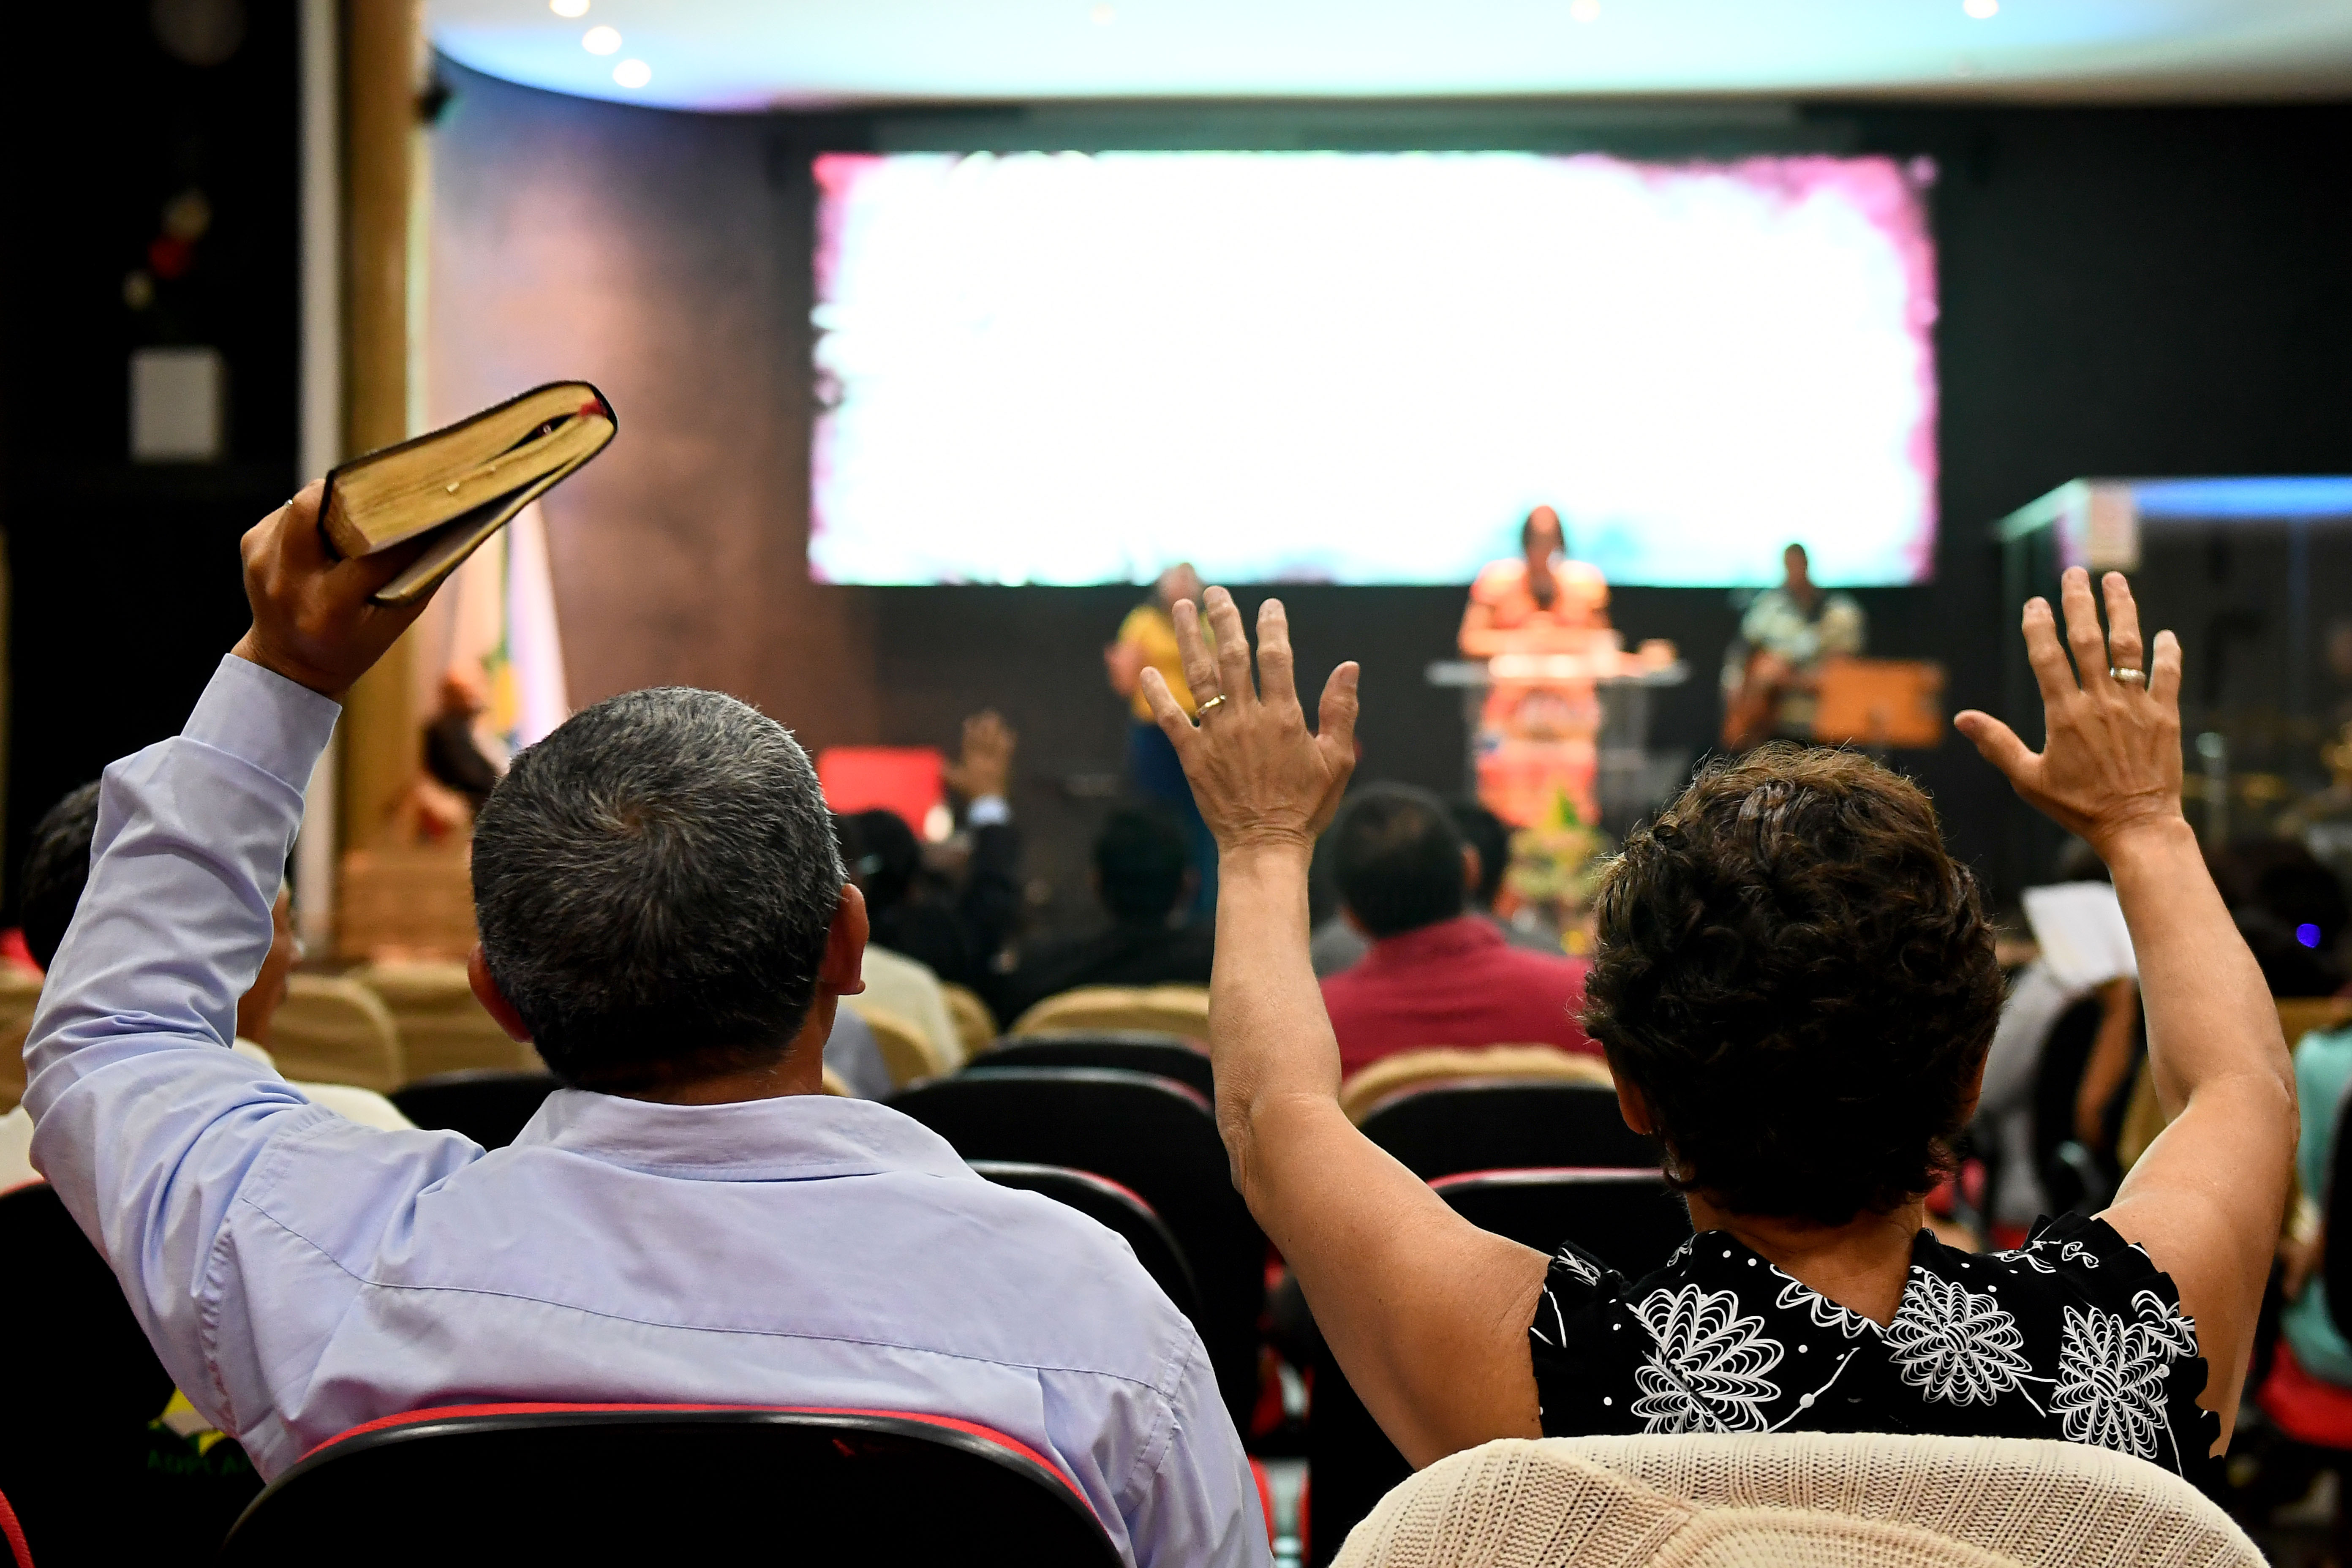 Faithful pray at an evangelical church in Brasilia, on September 21, 2018 for the recovery of the health of Brazilian right-wing presidential candidate Jair Bolsonaro, who suffered a knife attack during the campaign. - The powerful evangelical churches of Brazil are increasingly permeable to the rhetoric of the Brazilian right-wing presidential candidate Jair Bolsonaro. In the latest poll taken by Datafolha, Bolsonaro led with 28 percent ahead of leftist candidate Fernando Haddad on 16. Harvesting 36% of adhesions among evangelical voters, more than twice that of any of the other candidates (Fernando Haddad, 12%; Geraldo Alckmin, 10%, Ciro Gomes, 10%, Marina Silva, 8%). (Photo by EVARISTO SA / AFP)        (Photo credit should read EVARISTO SA/AFP via Getty Images)